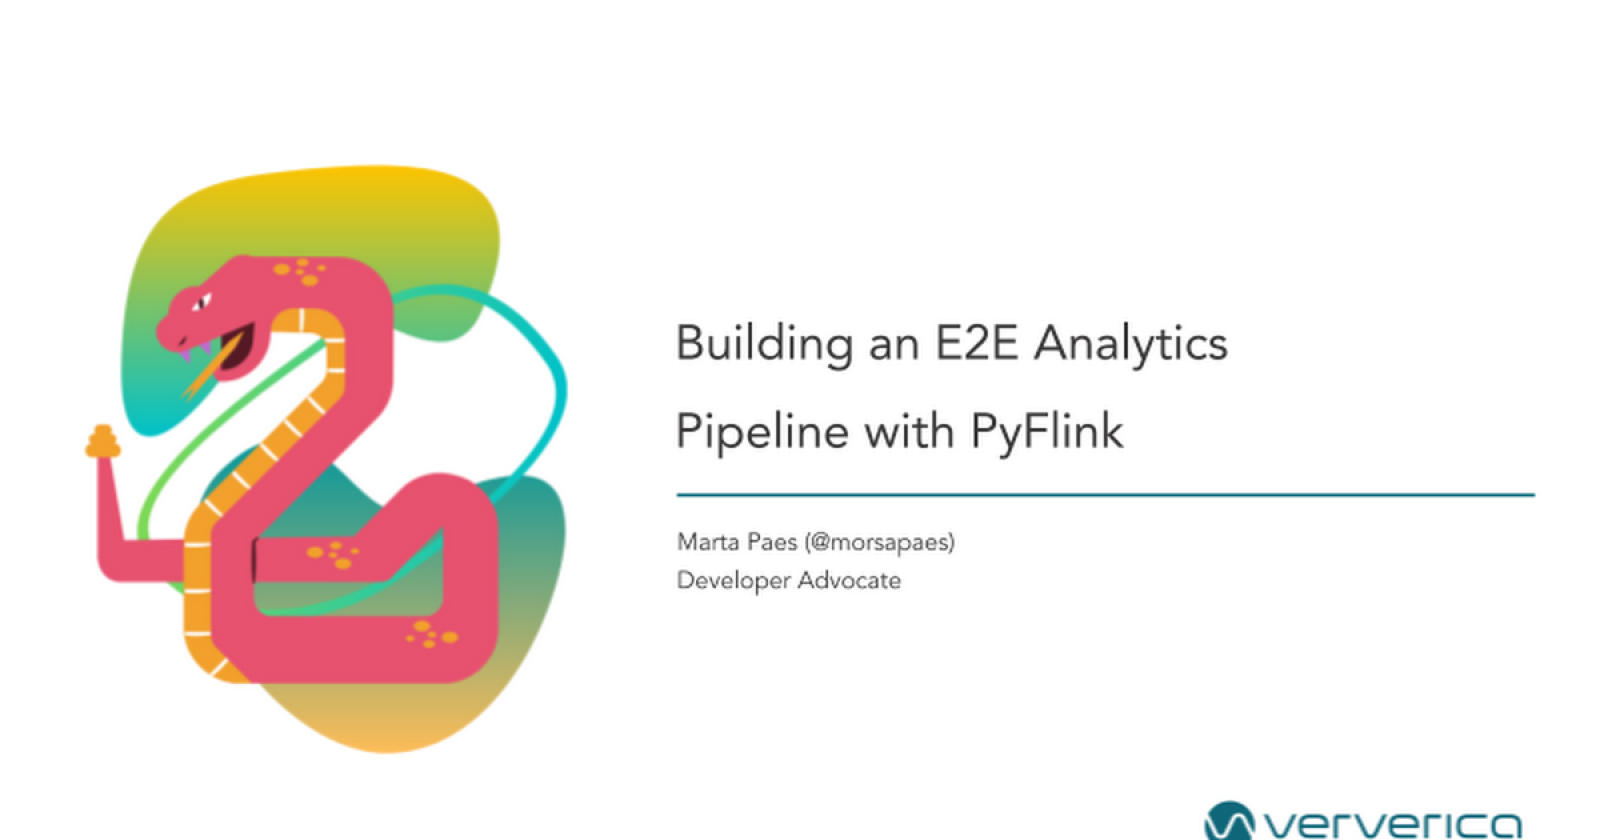 Building an end-to-end Analytics Pipeline with PyFlink